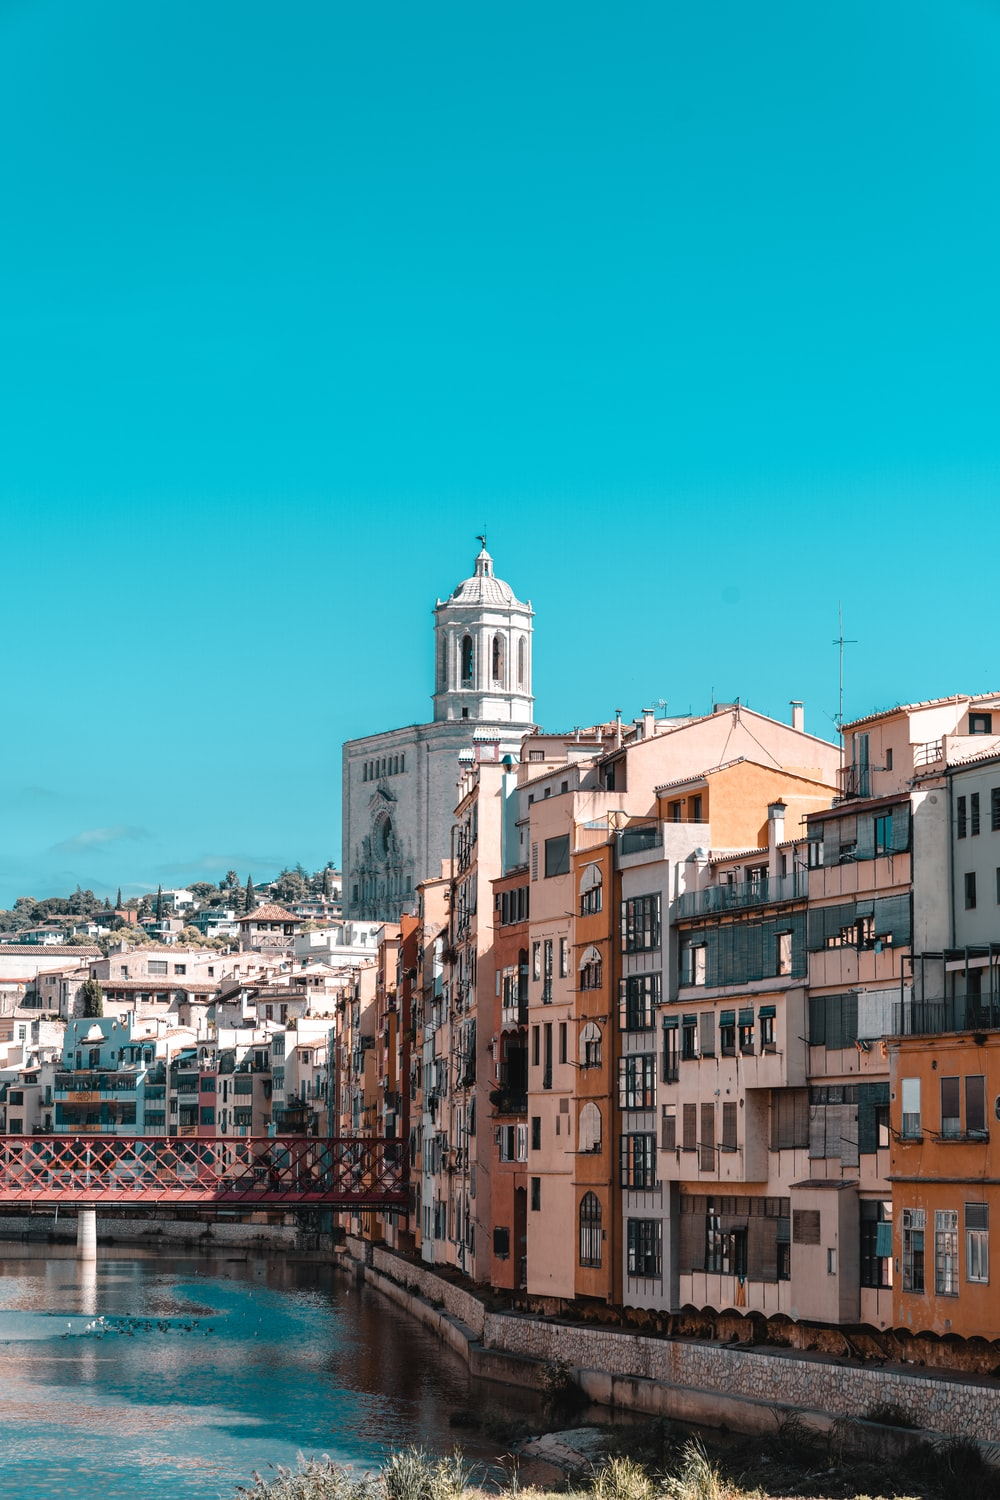 brown and white concrete buildings under blue sky during daytime